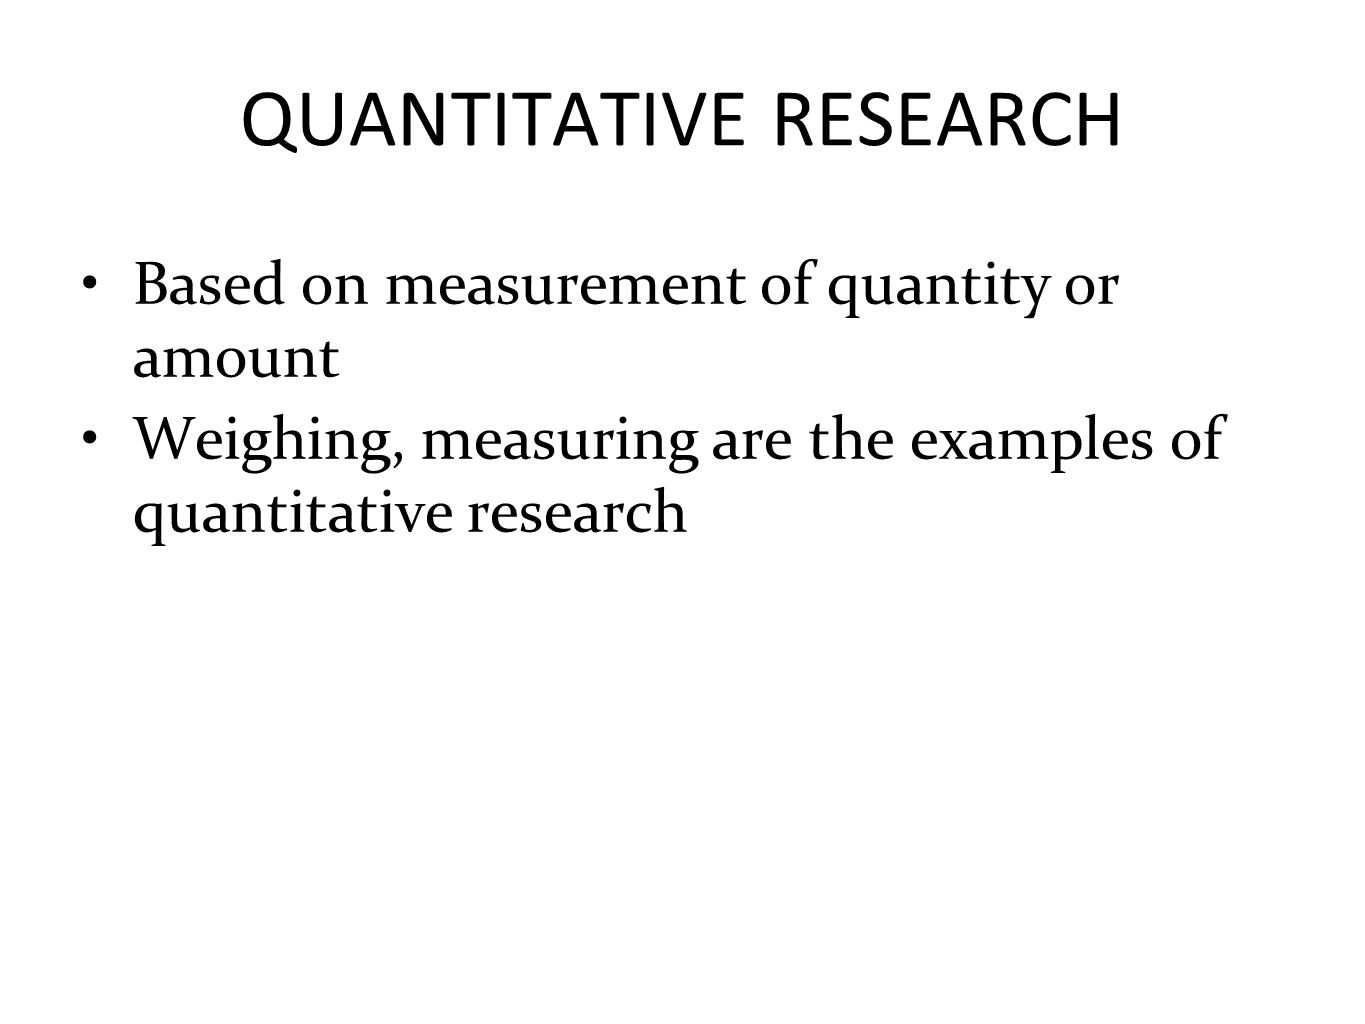 QUANTITATIVE RESEARCH Based on measurement of quantity or amount Weighing, measuring are the examples of quantitative research